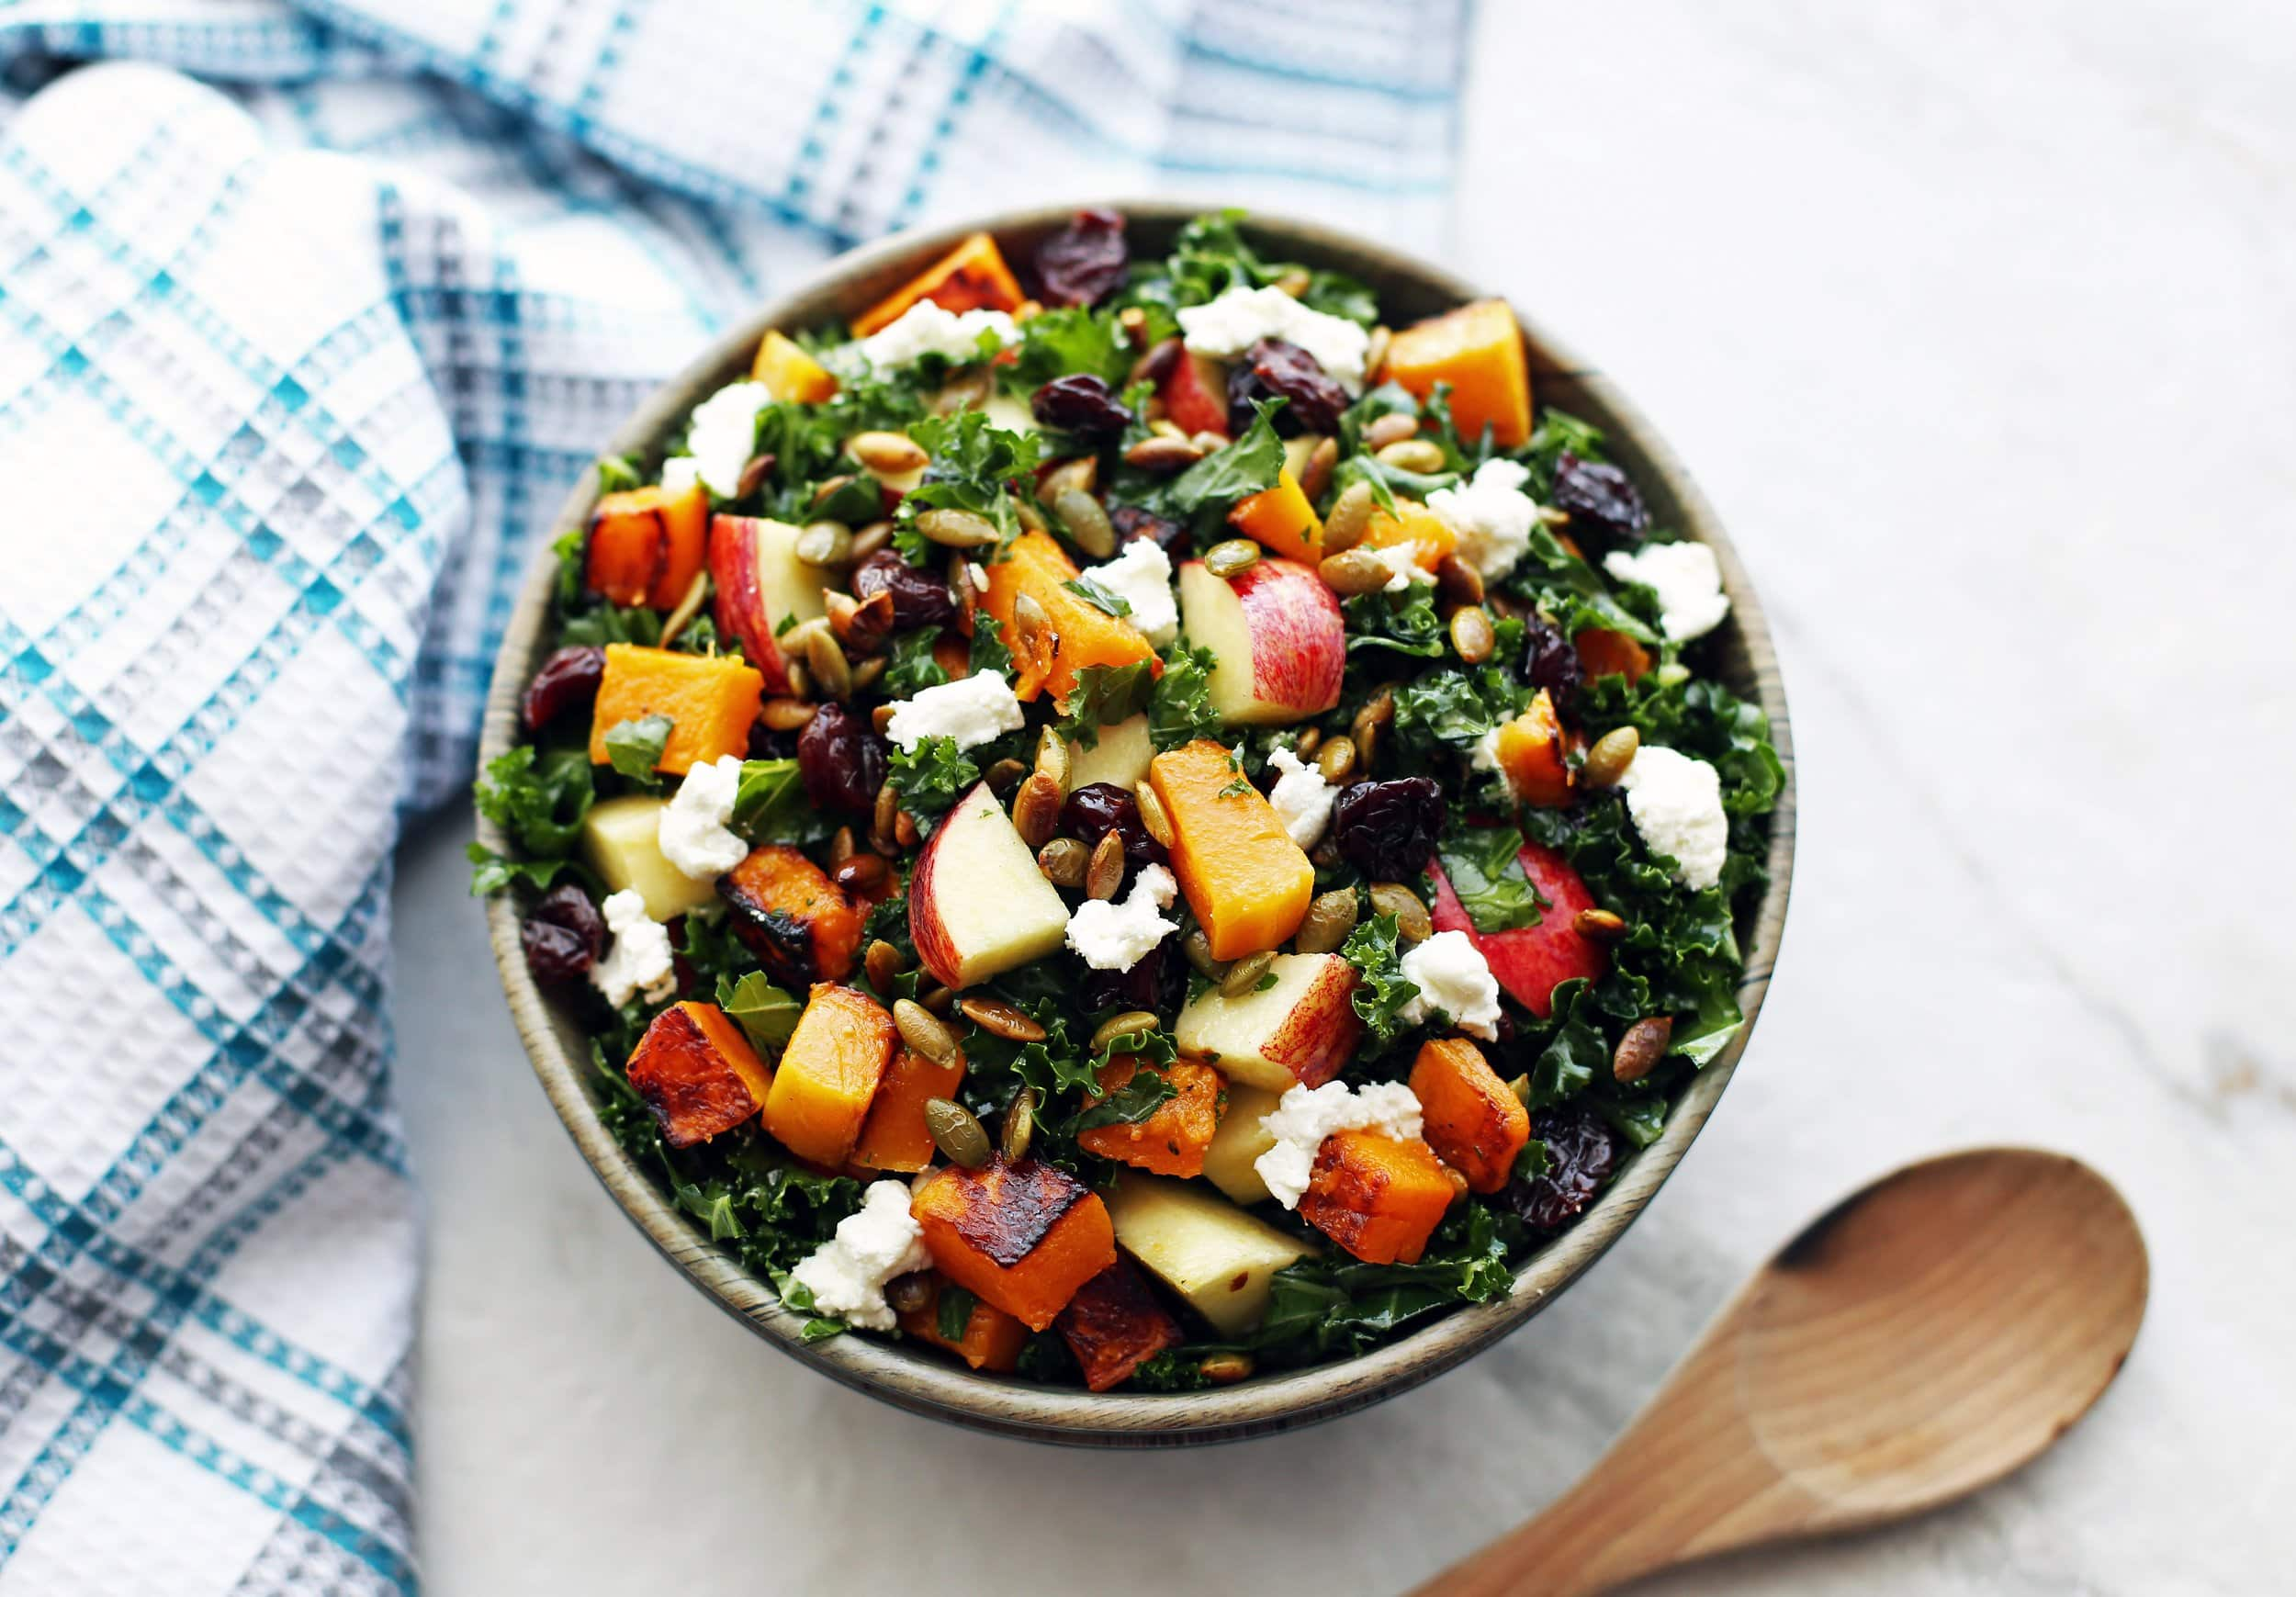 Overhead angled view of a bowl of Roasted Butternut Squash and Apple Kale Salad with Lemon Vinaigrette